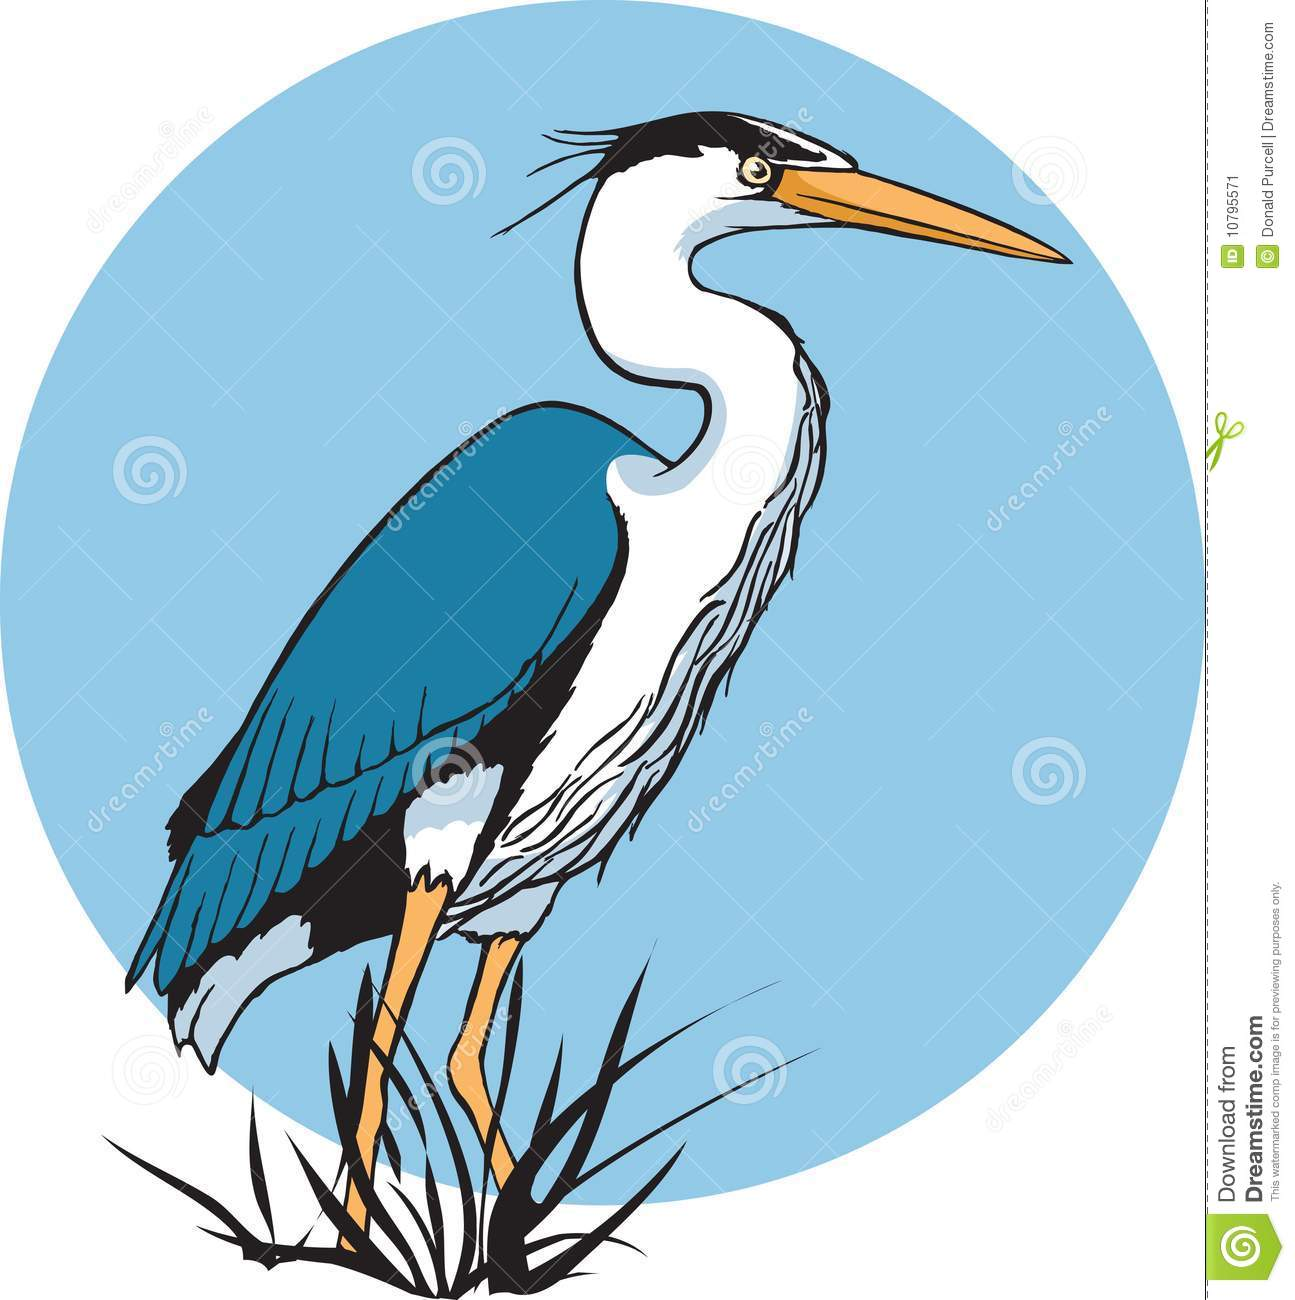 Blue Heron clipart #19, Download drawings